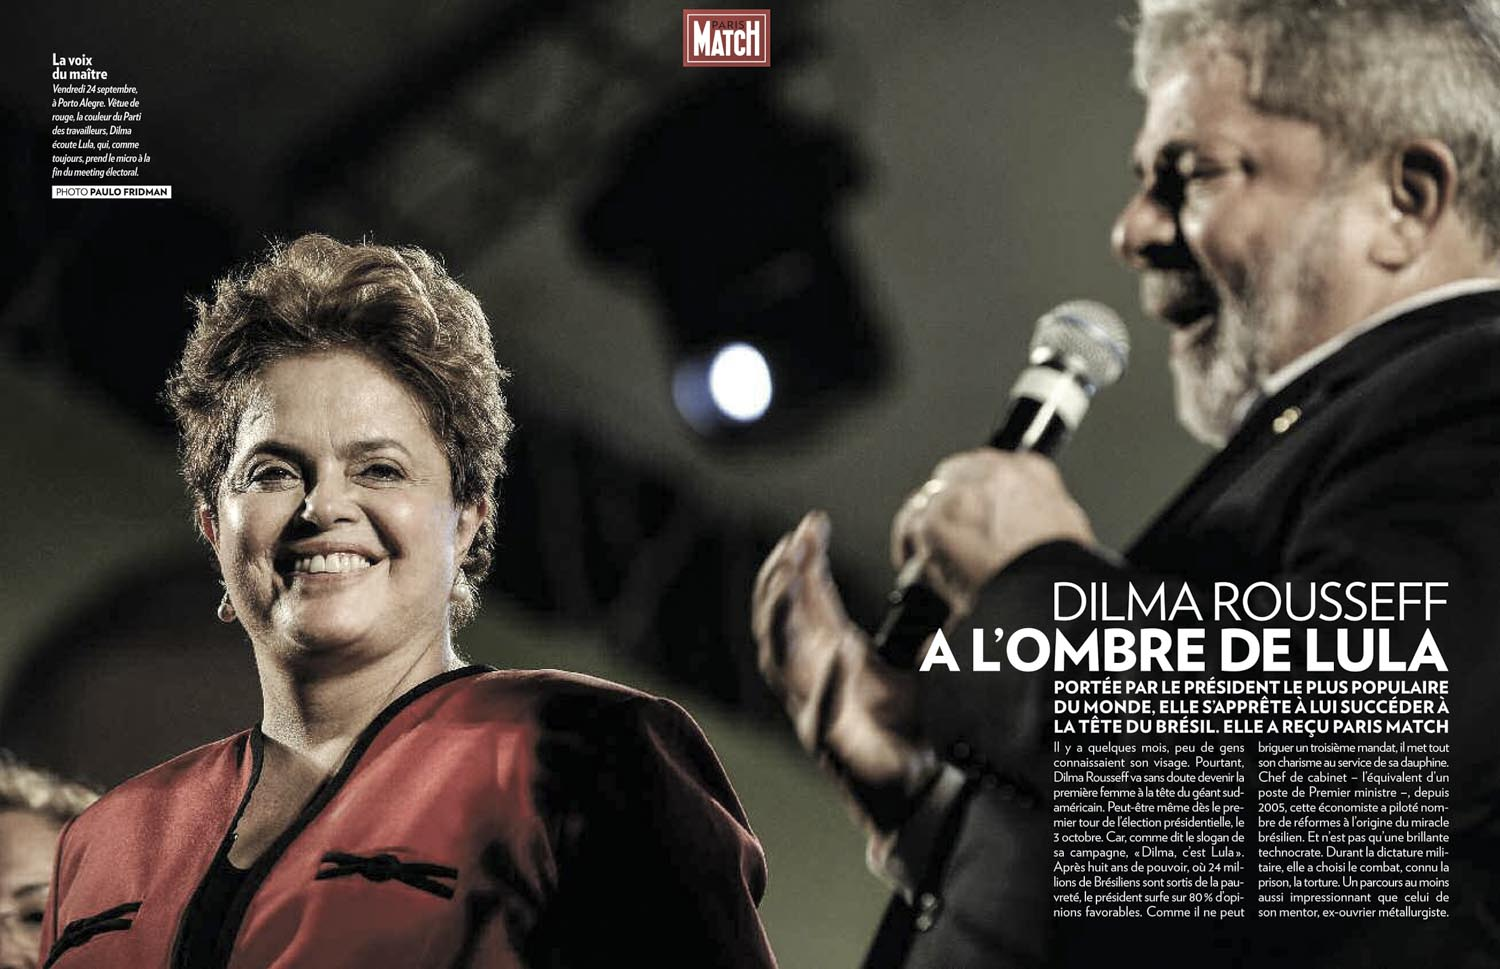 On assignment for Paris Match, Dilma Roussef Brazilian president and Lula former Brazilian president